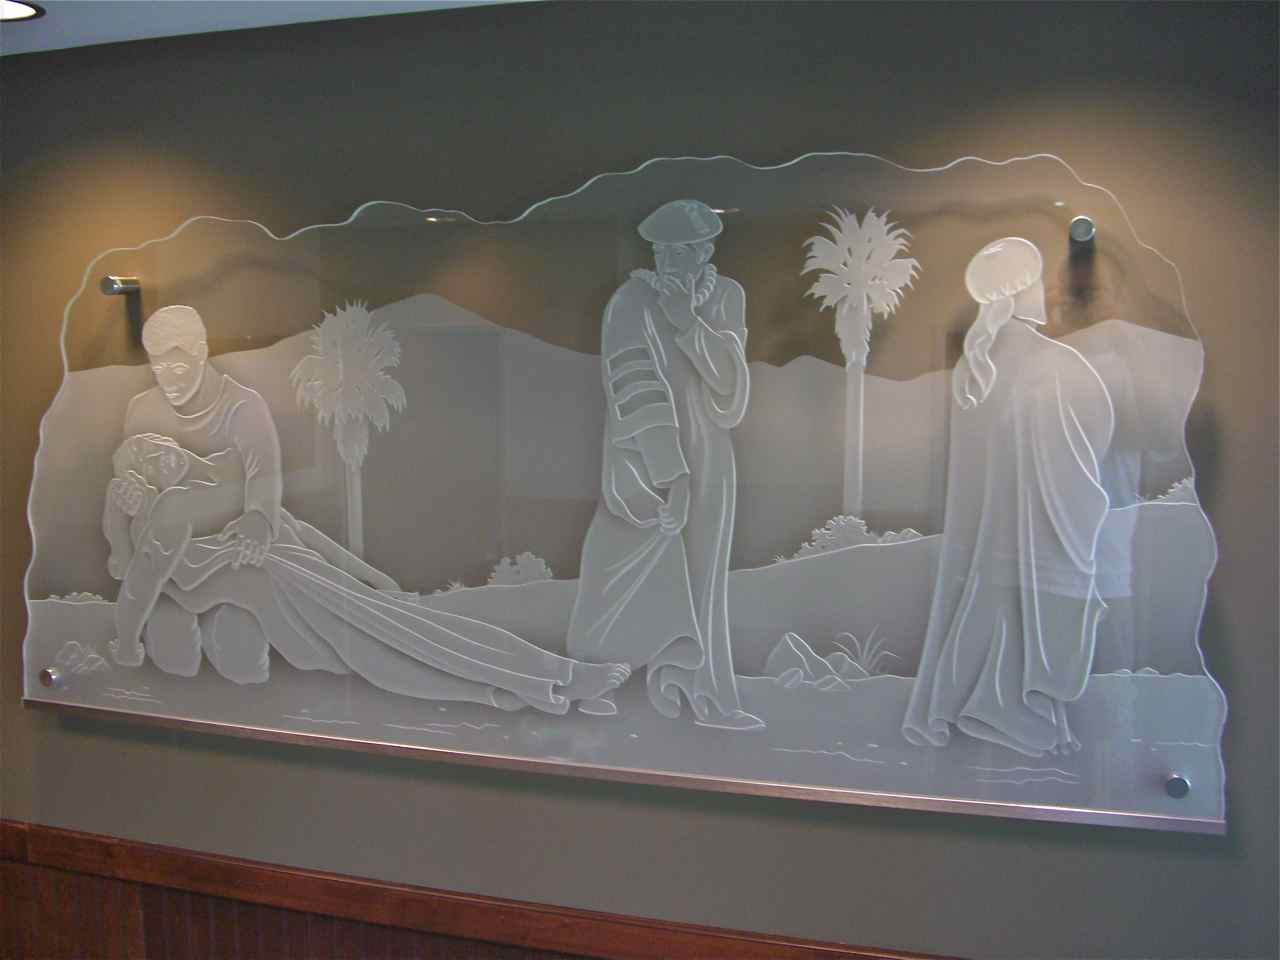 Inspiring Glass Wall Art Loma Linda University Sans